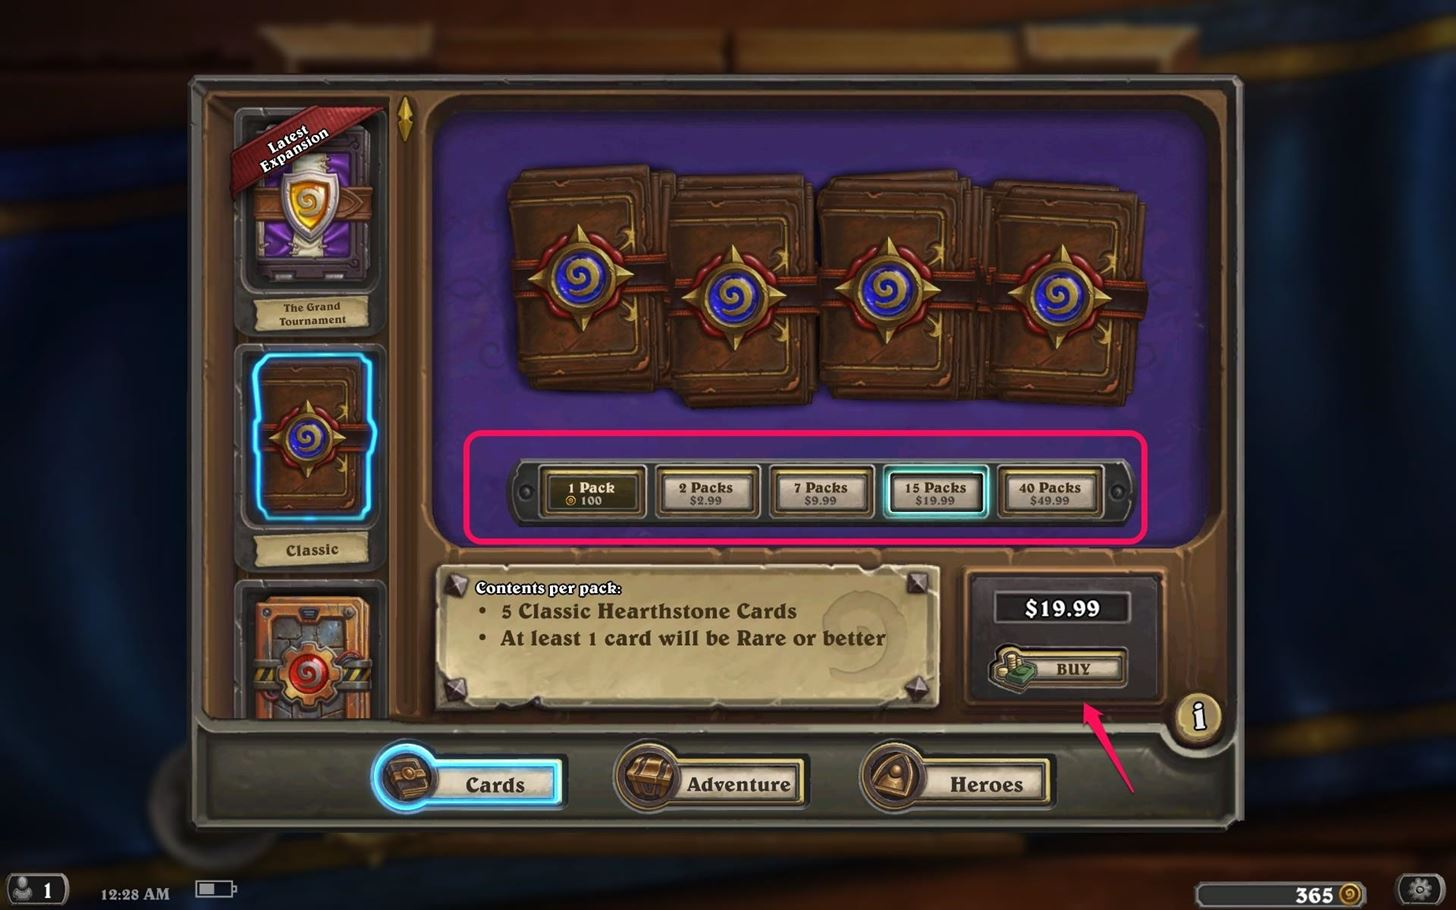 How to Get Cheap Hearthstone Packs